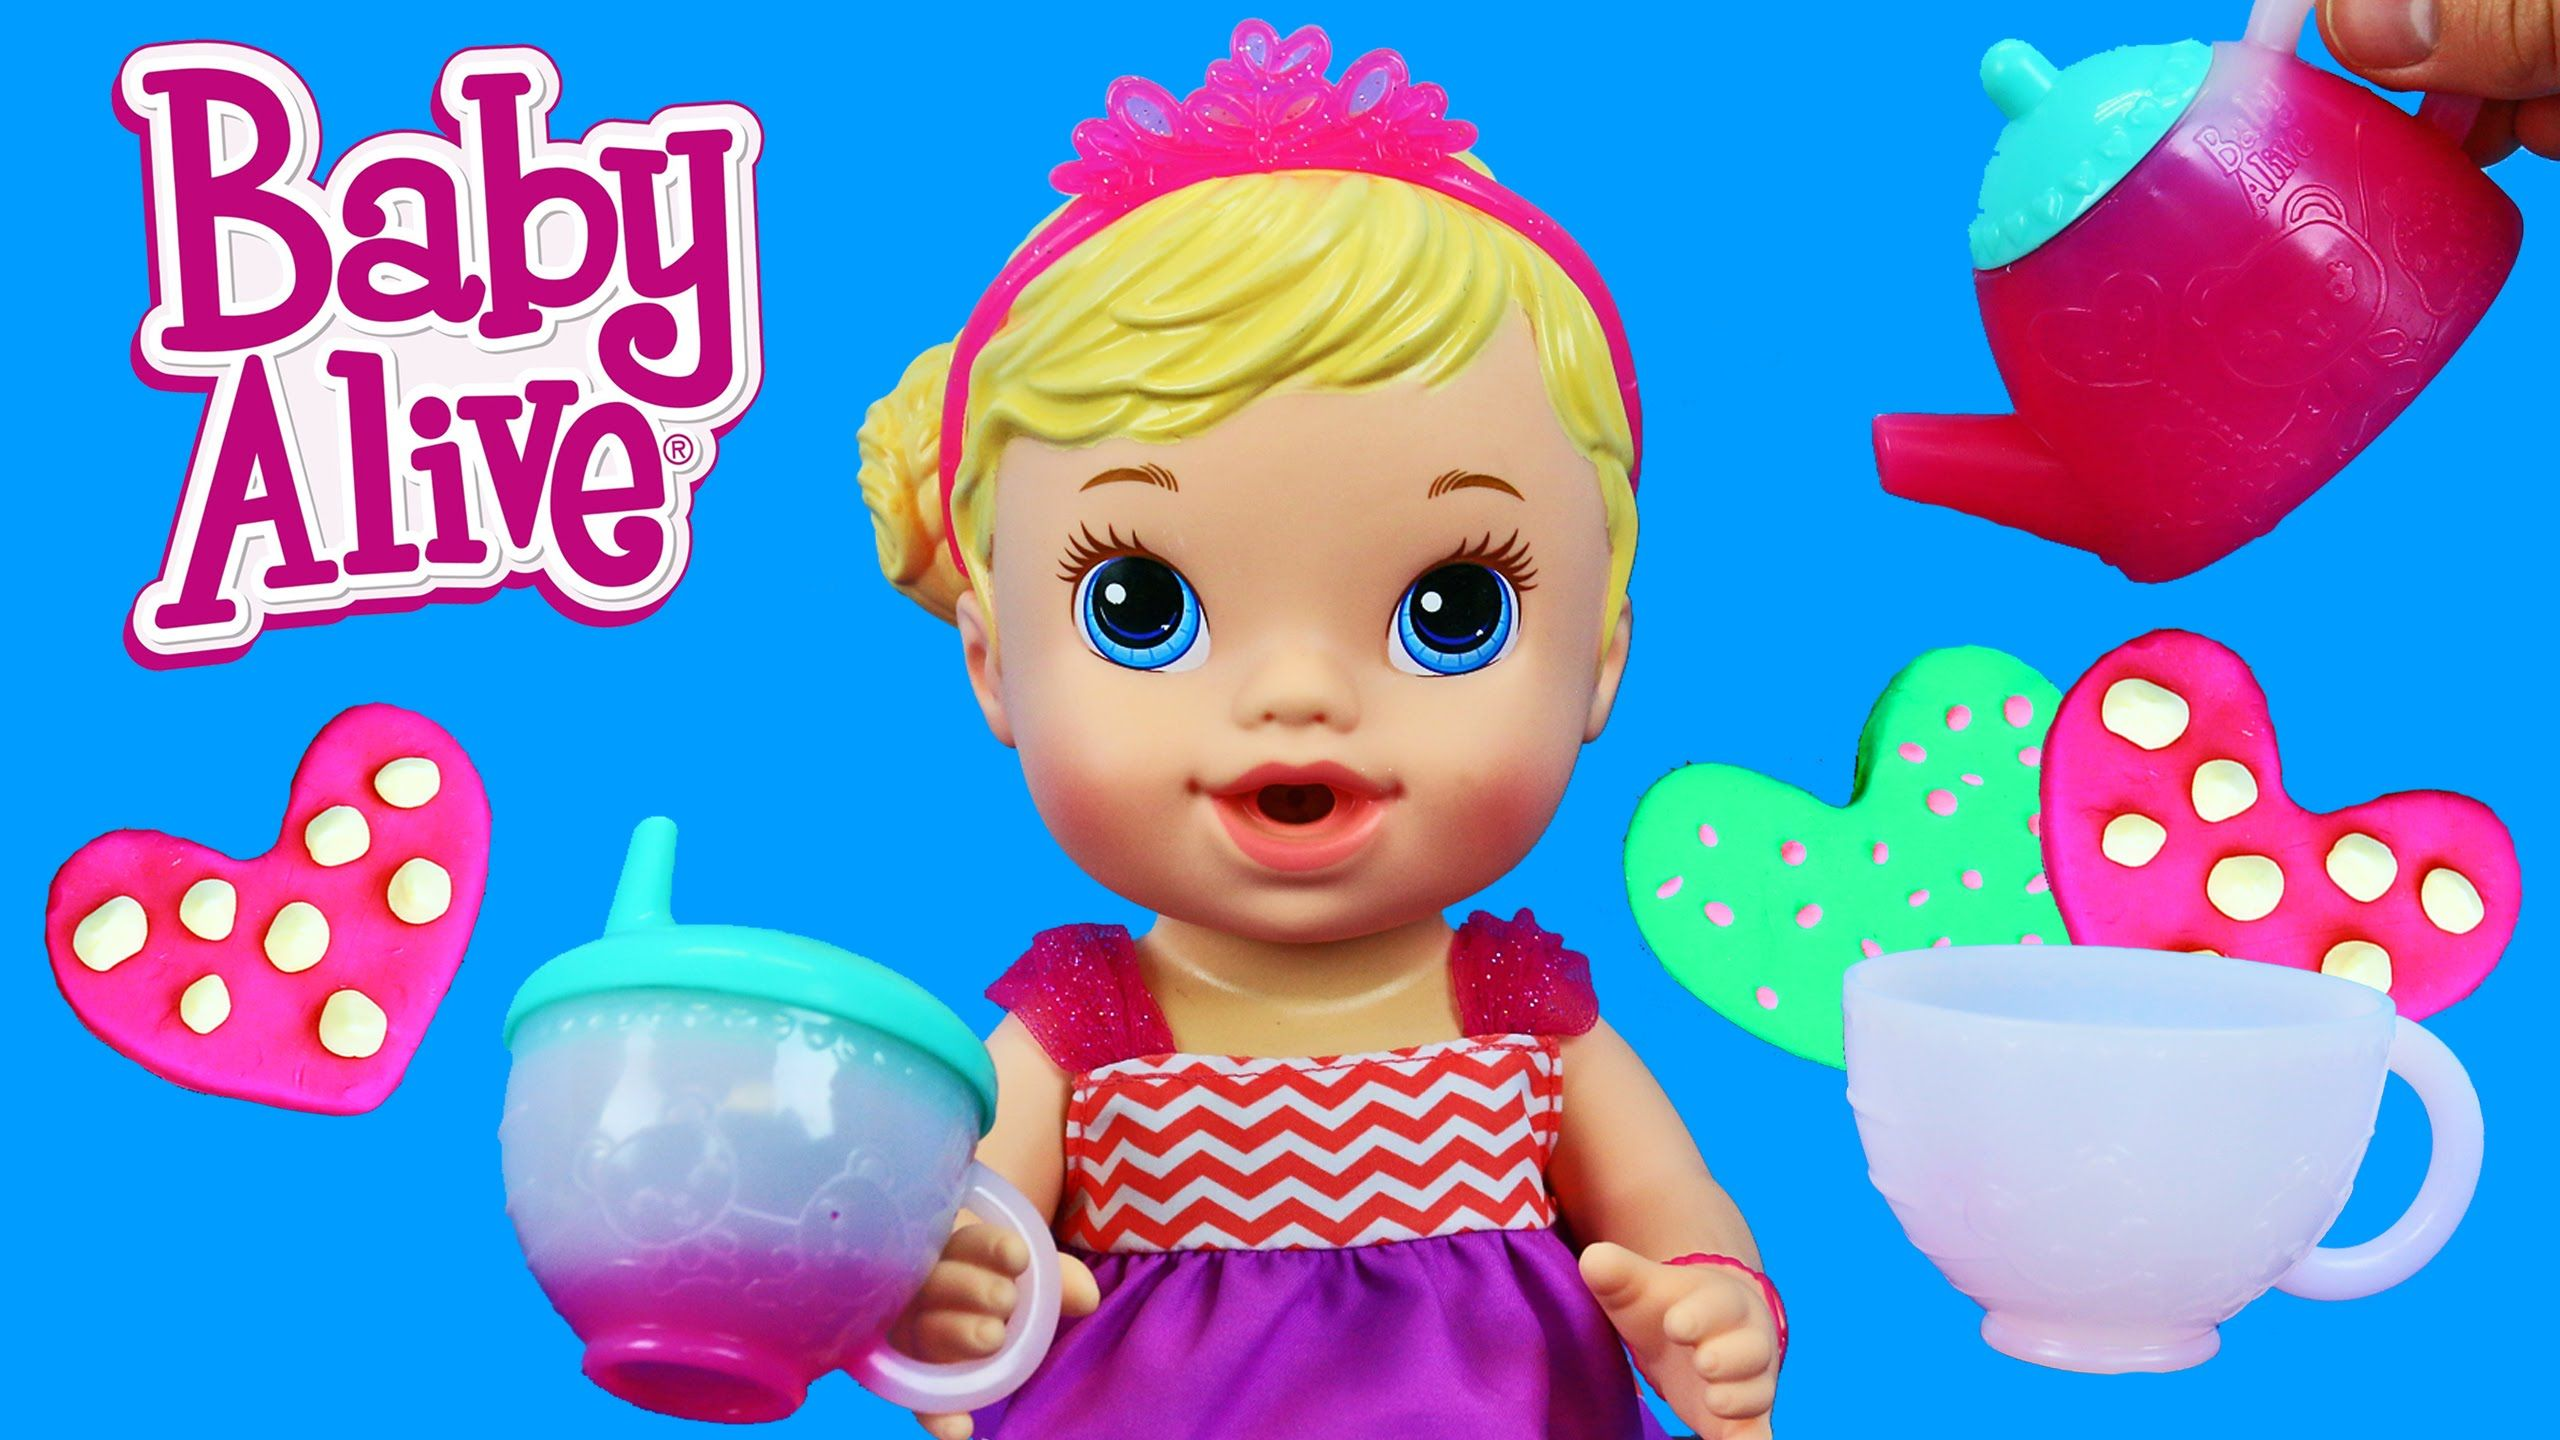 Baby Alive Teacup Surprise Baby Doll Fun Tea Party With Diy Play Doh Cookies By Disneycartoys Baby Alive Fun Tea Party Baby Dolls